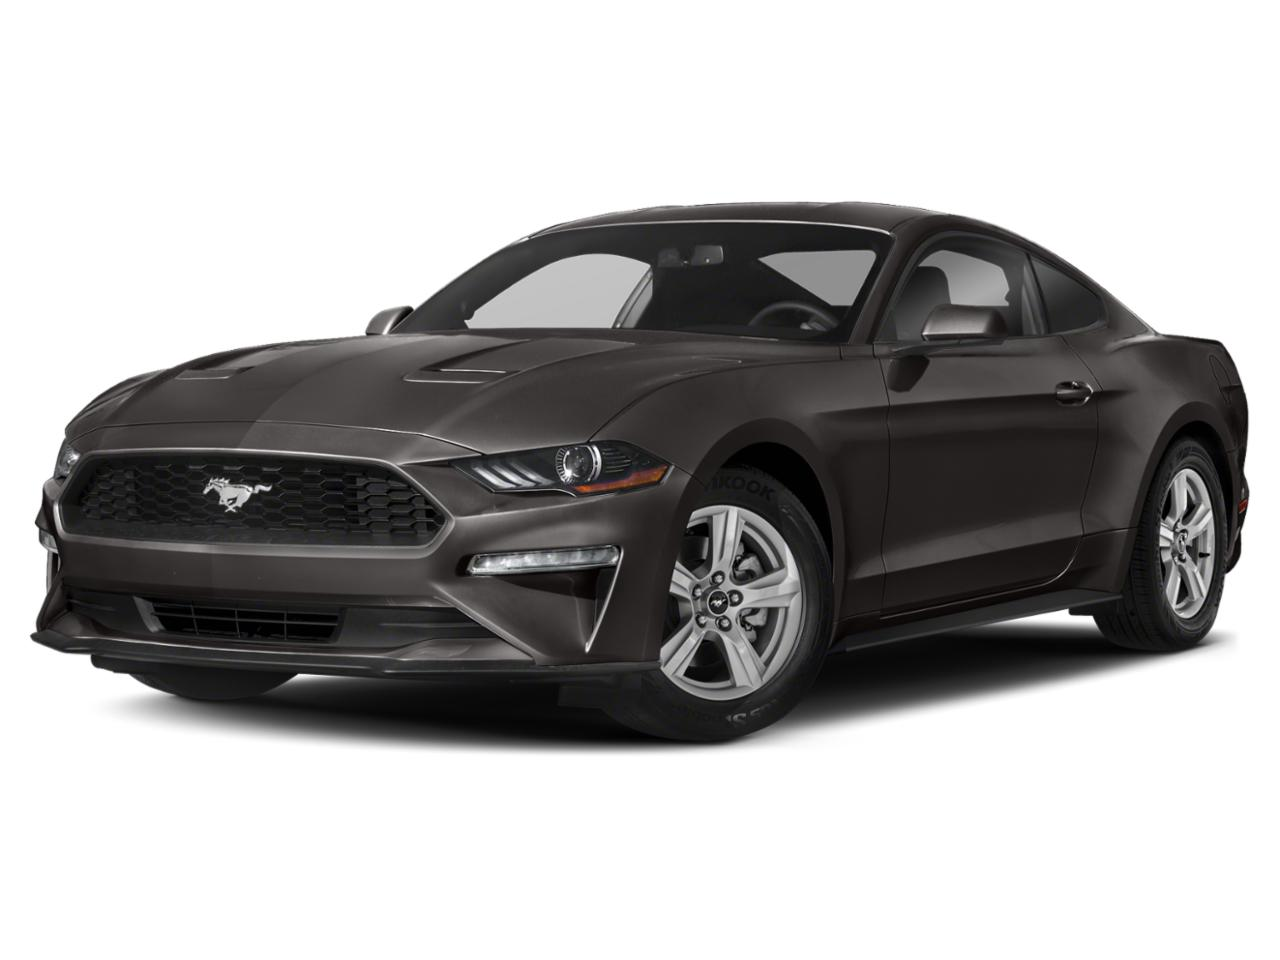 2019 Ford Mustang Vehicle Photo in Killeen, TX 76541